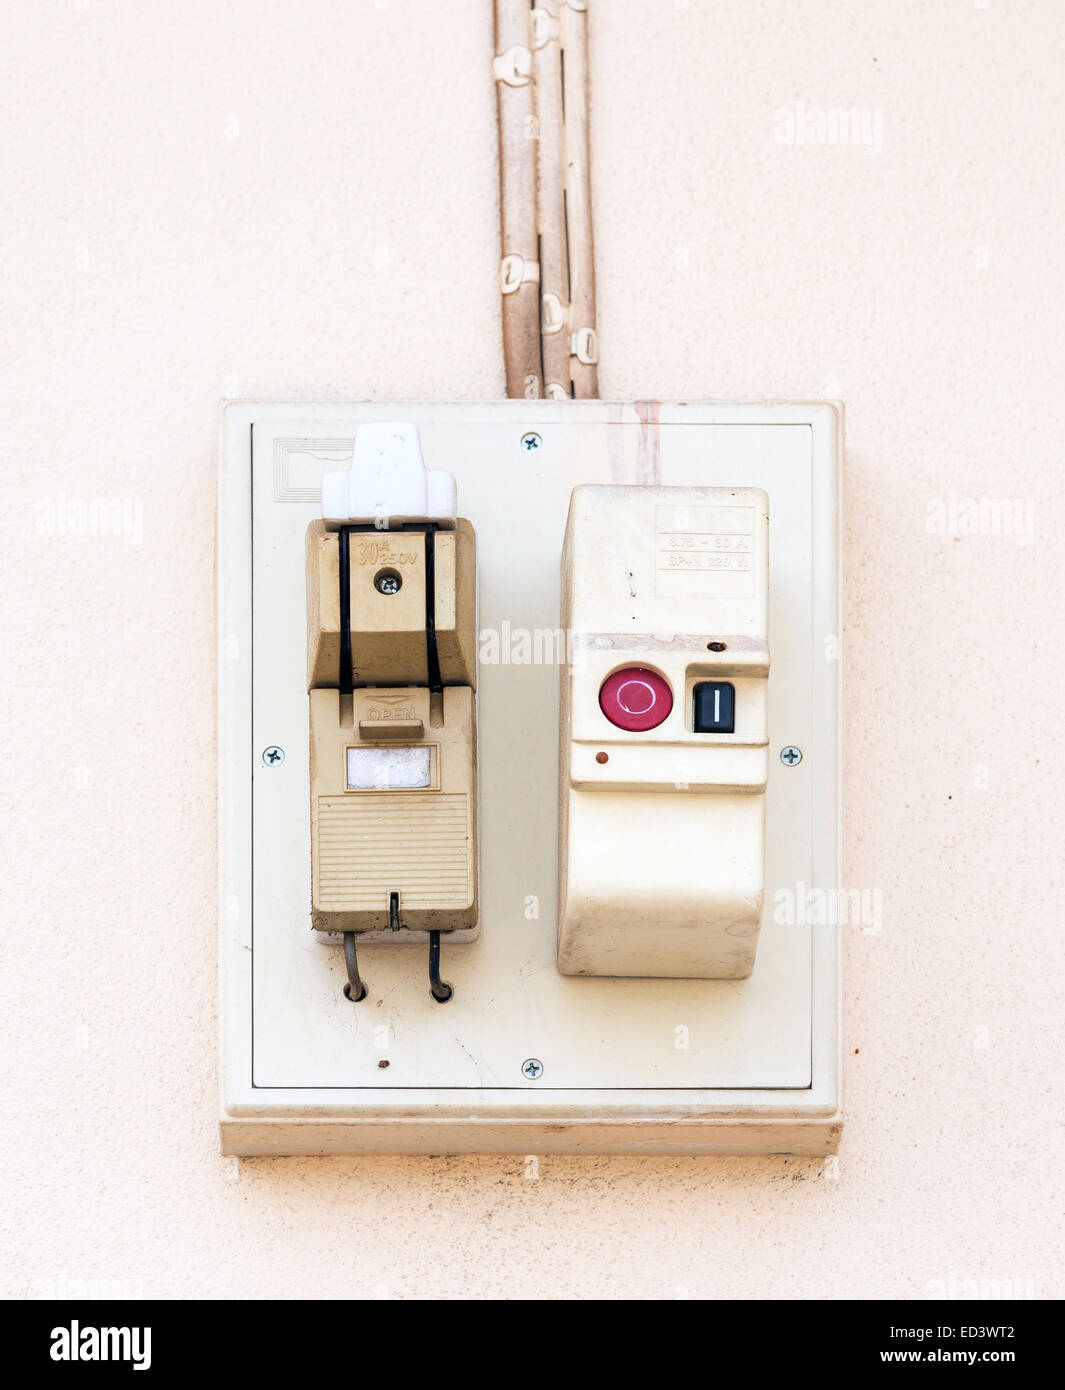 Breaker Box Stock Photos Images Alamy 06turnoffcircuitbreakerbox Old On The Wall Of Urban House Image